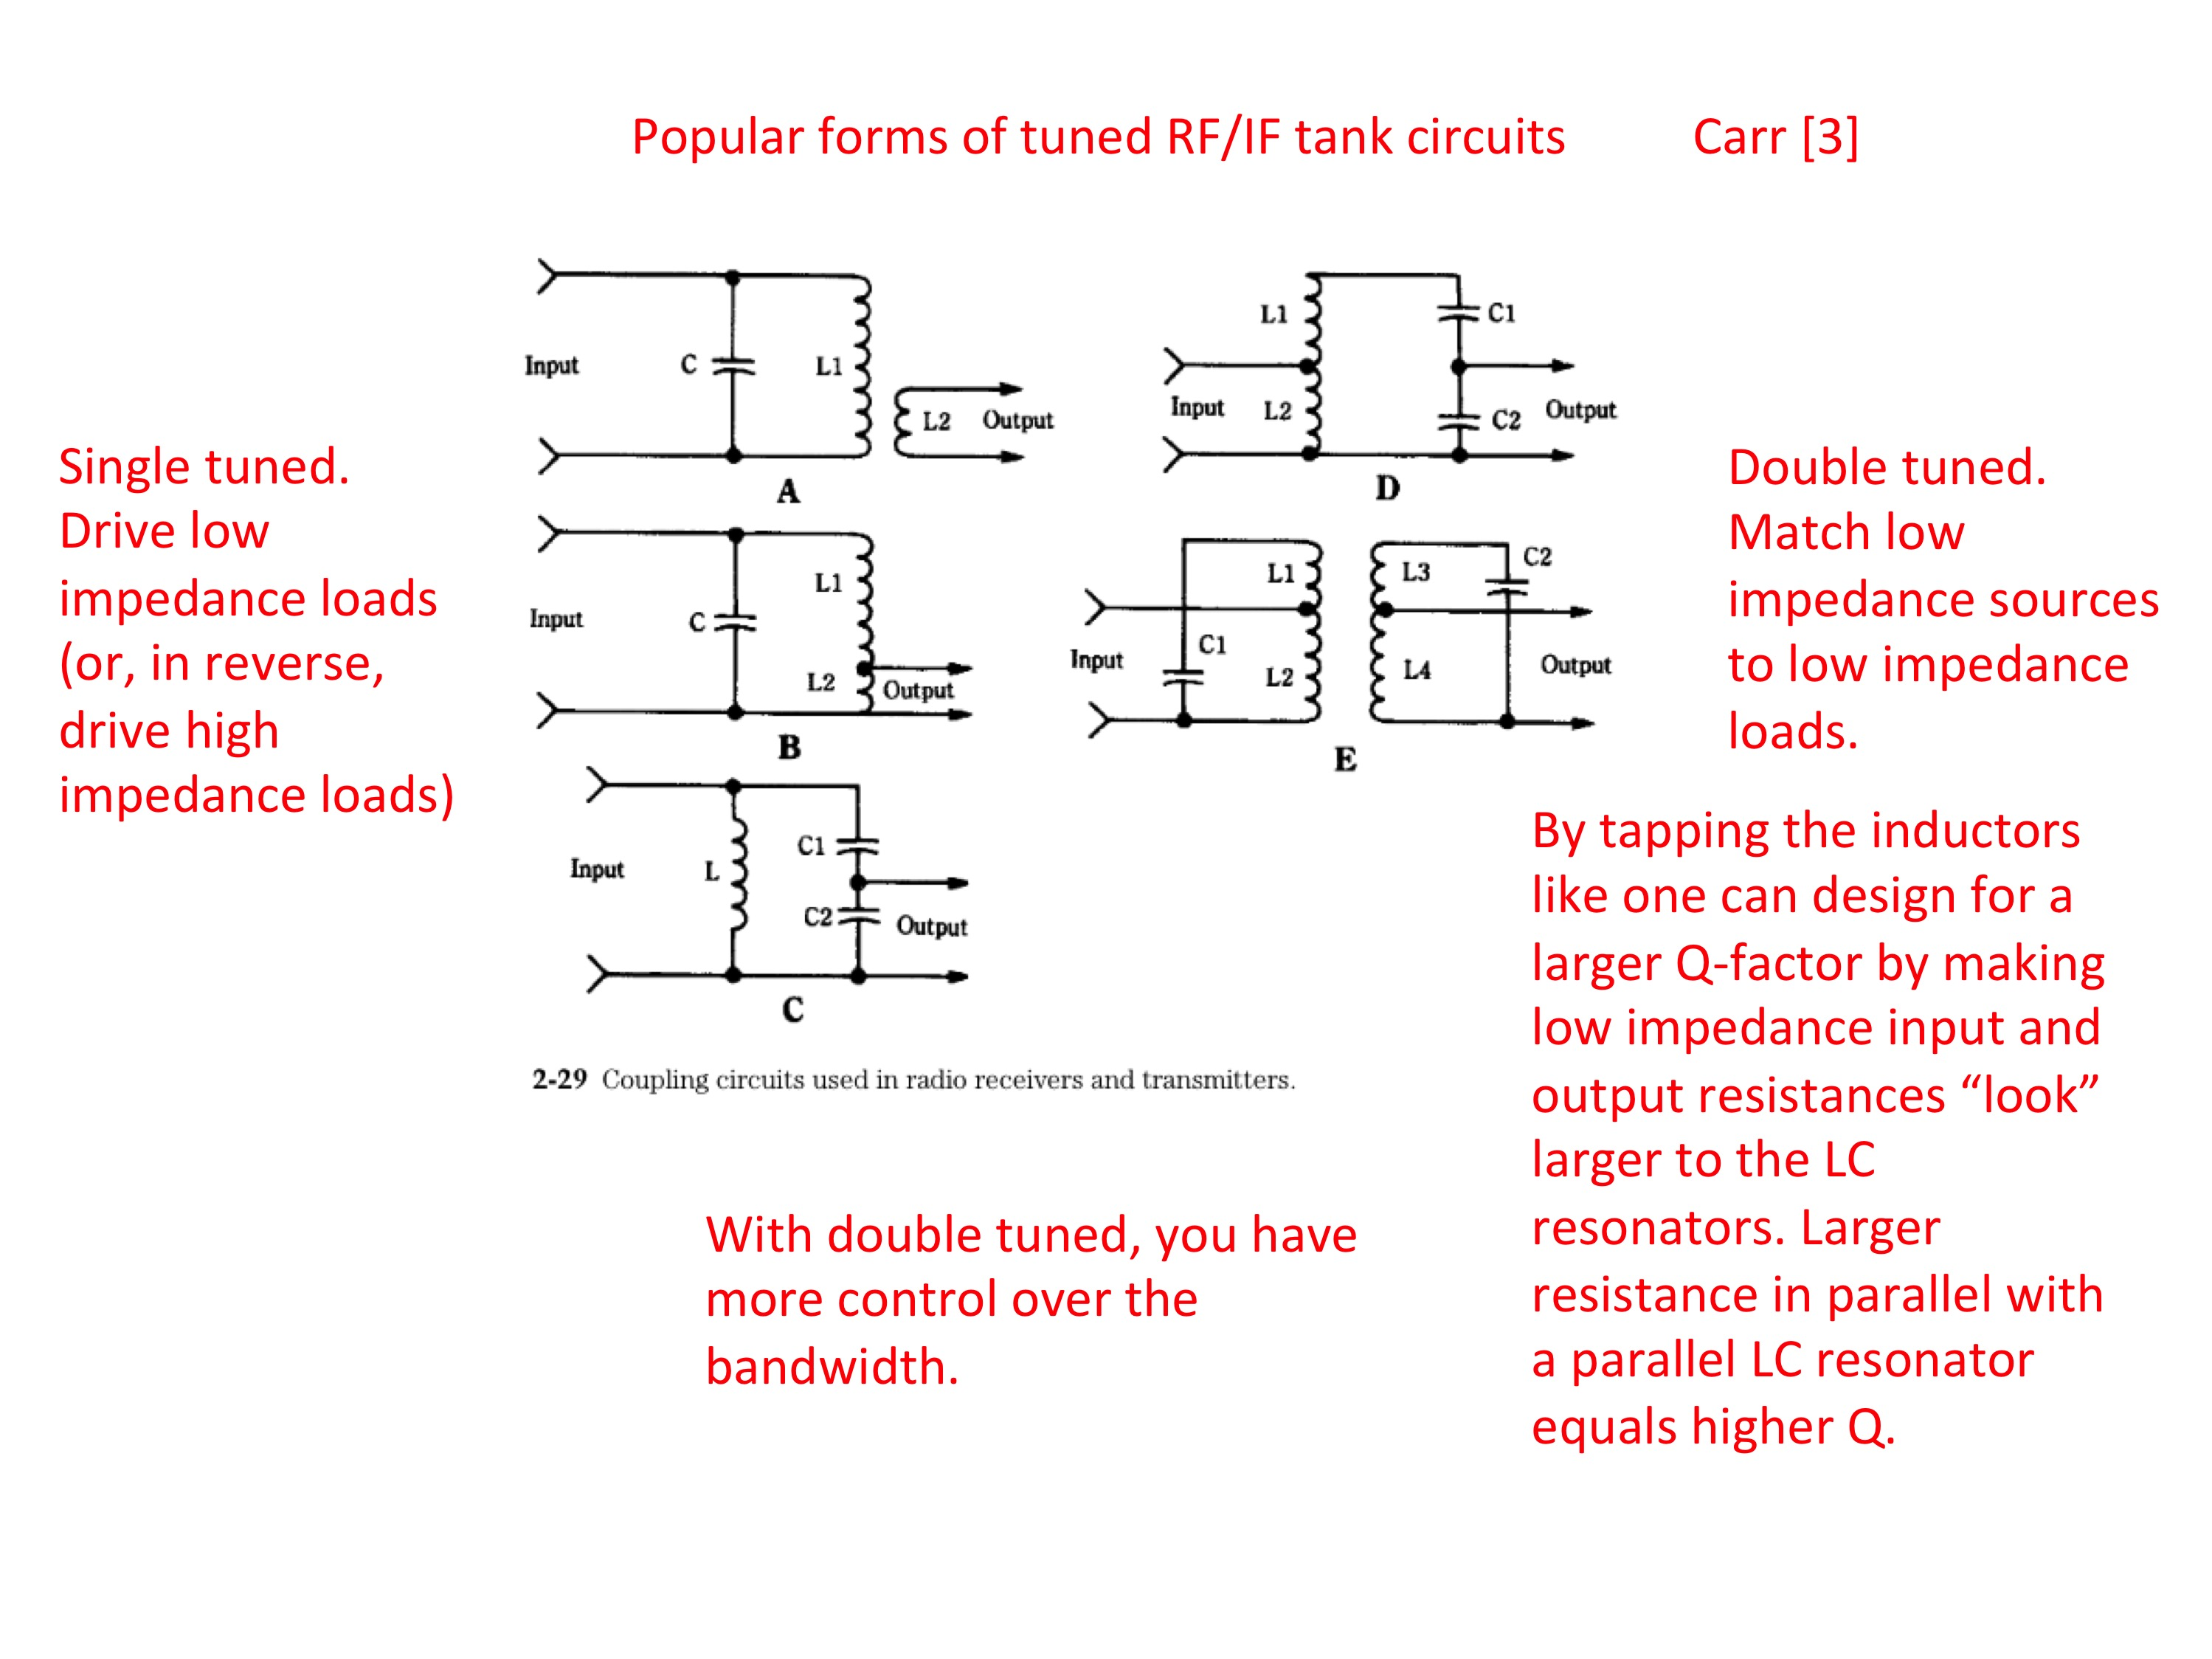 Resonant Coupling Networks Inductor Equivalent Circuit Of A Real Figure 26 Popular Forms Tuned Rf If Tank Circuits